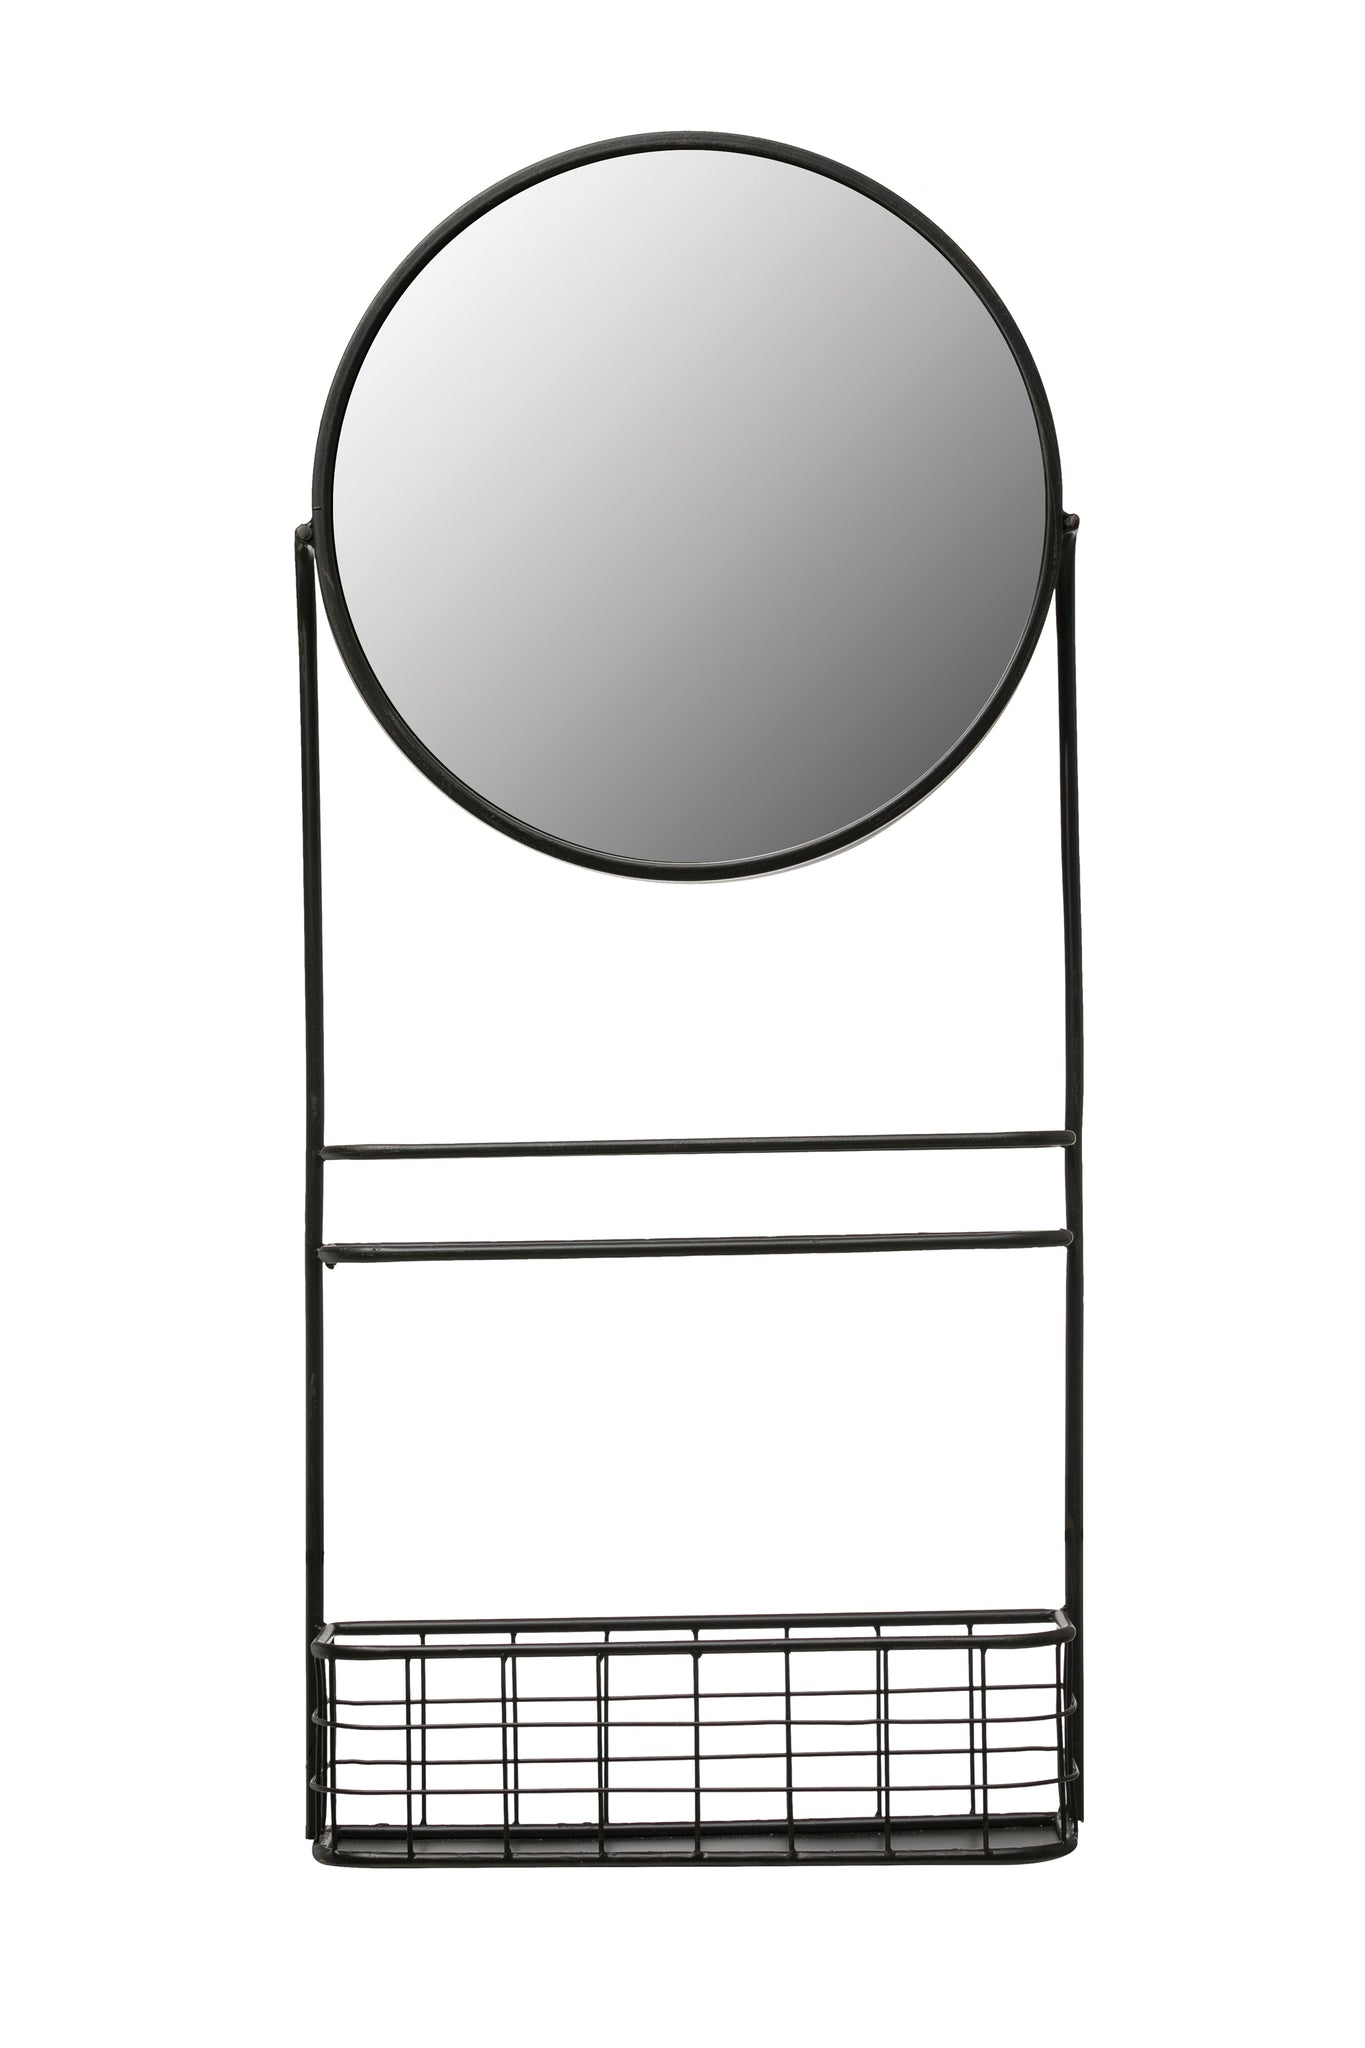 Round Metal Wall Mirror with Basket & Center Shelf